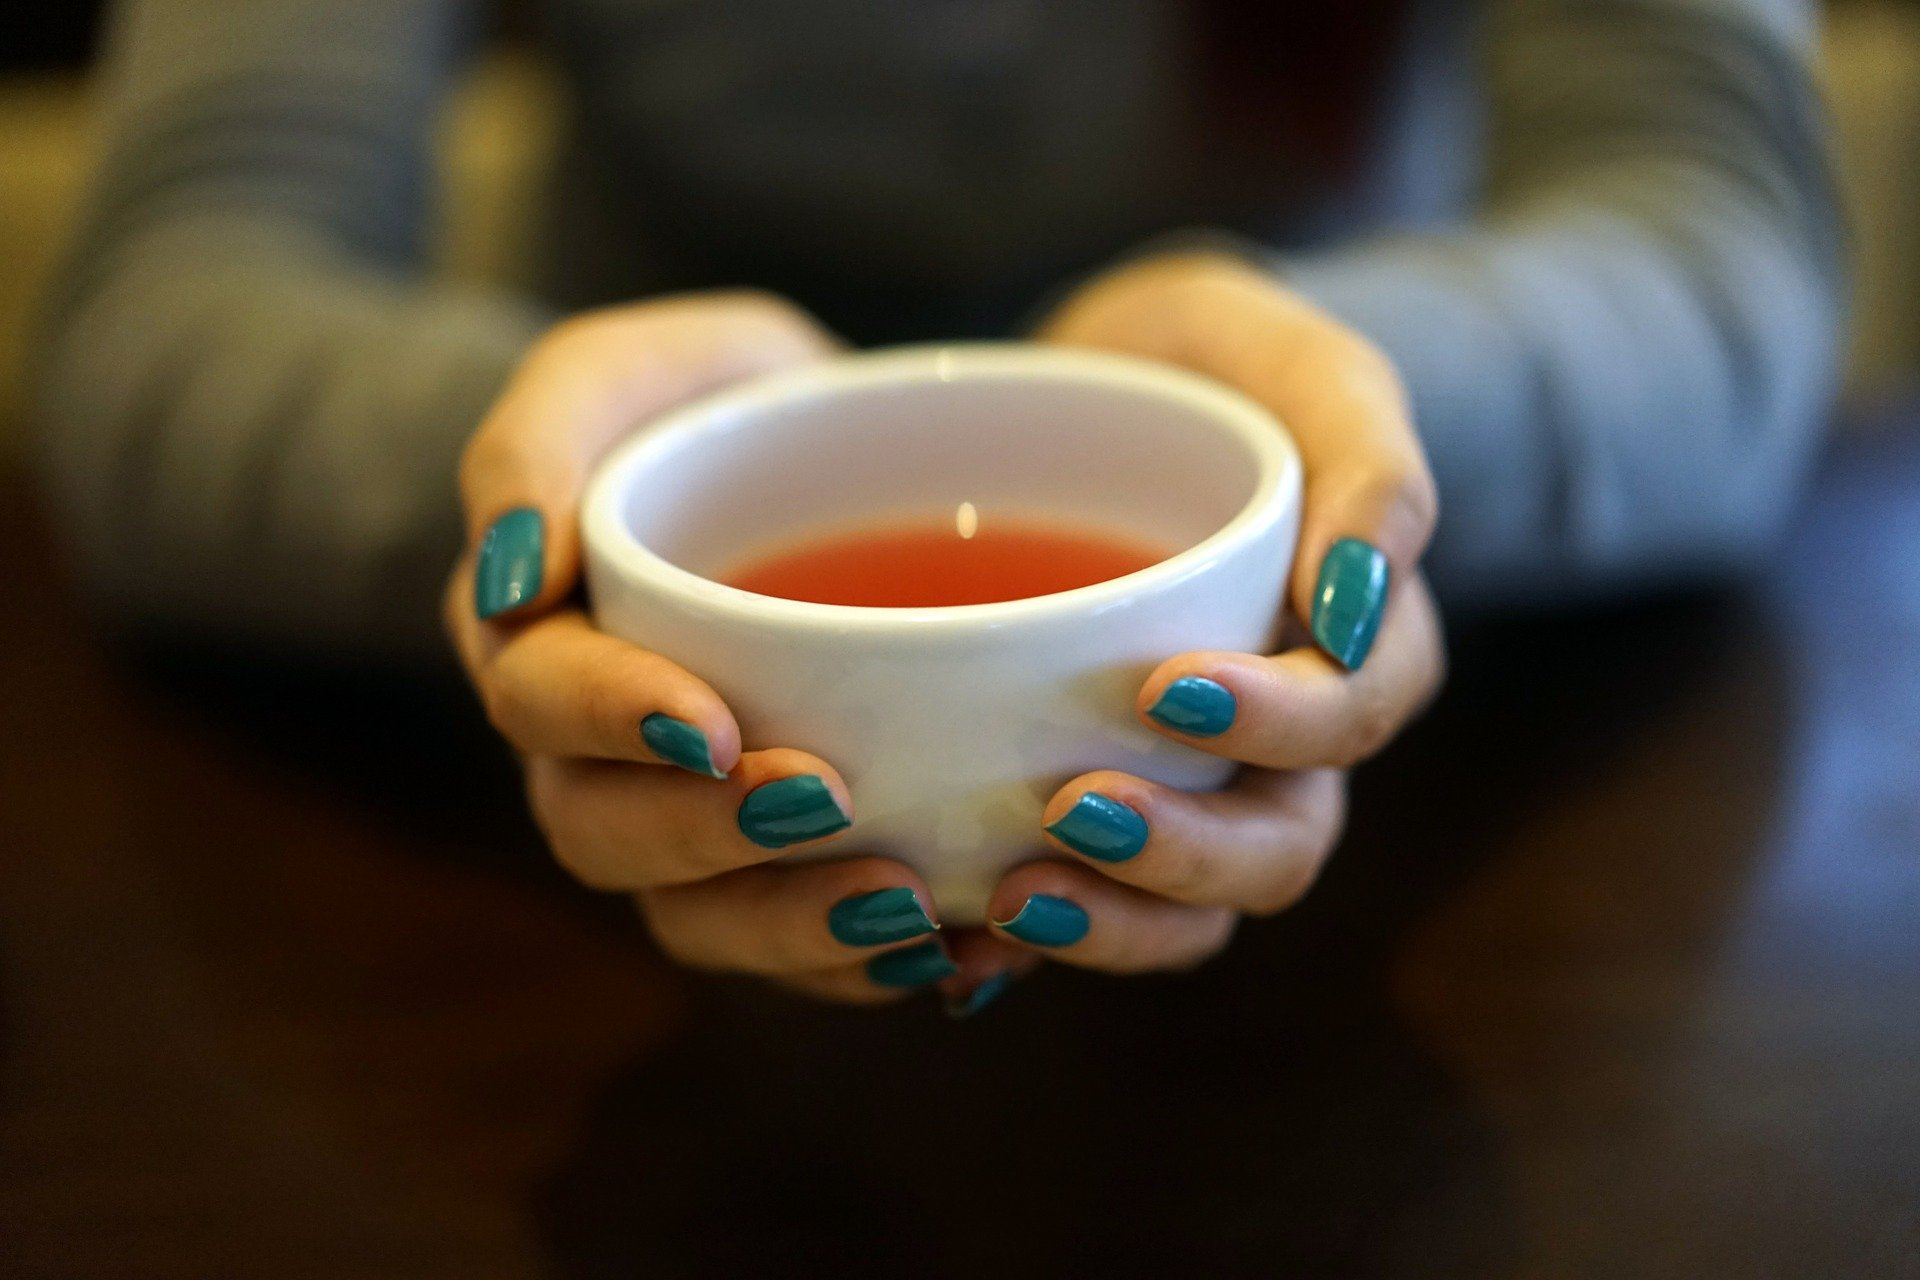 Cup of tea for fertility